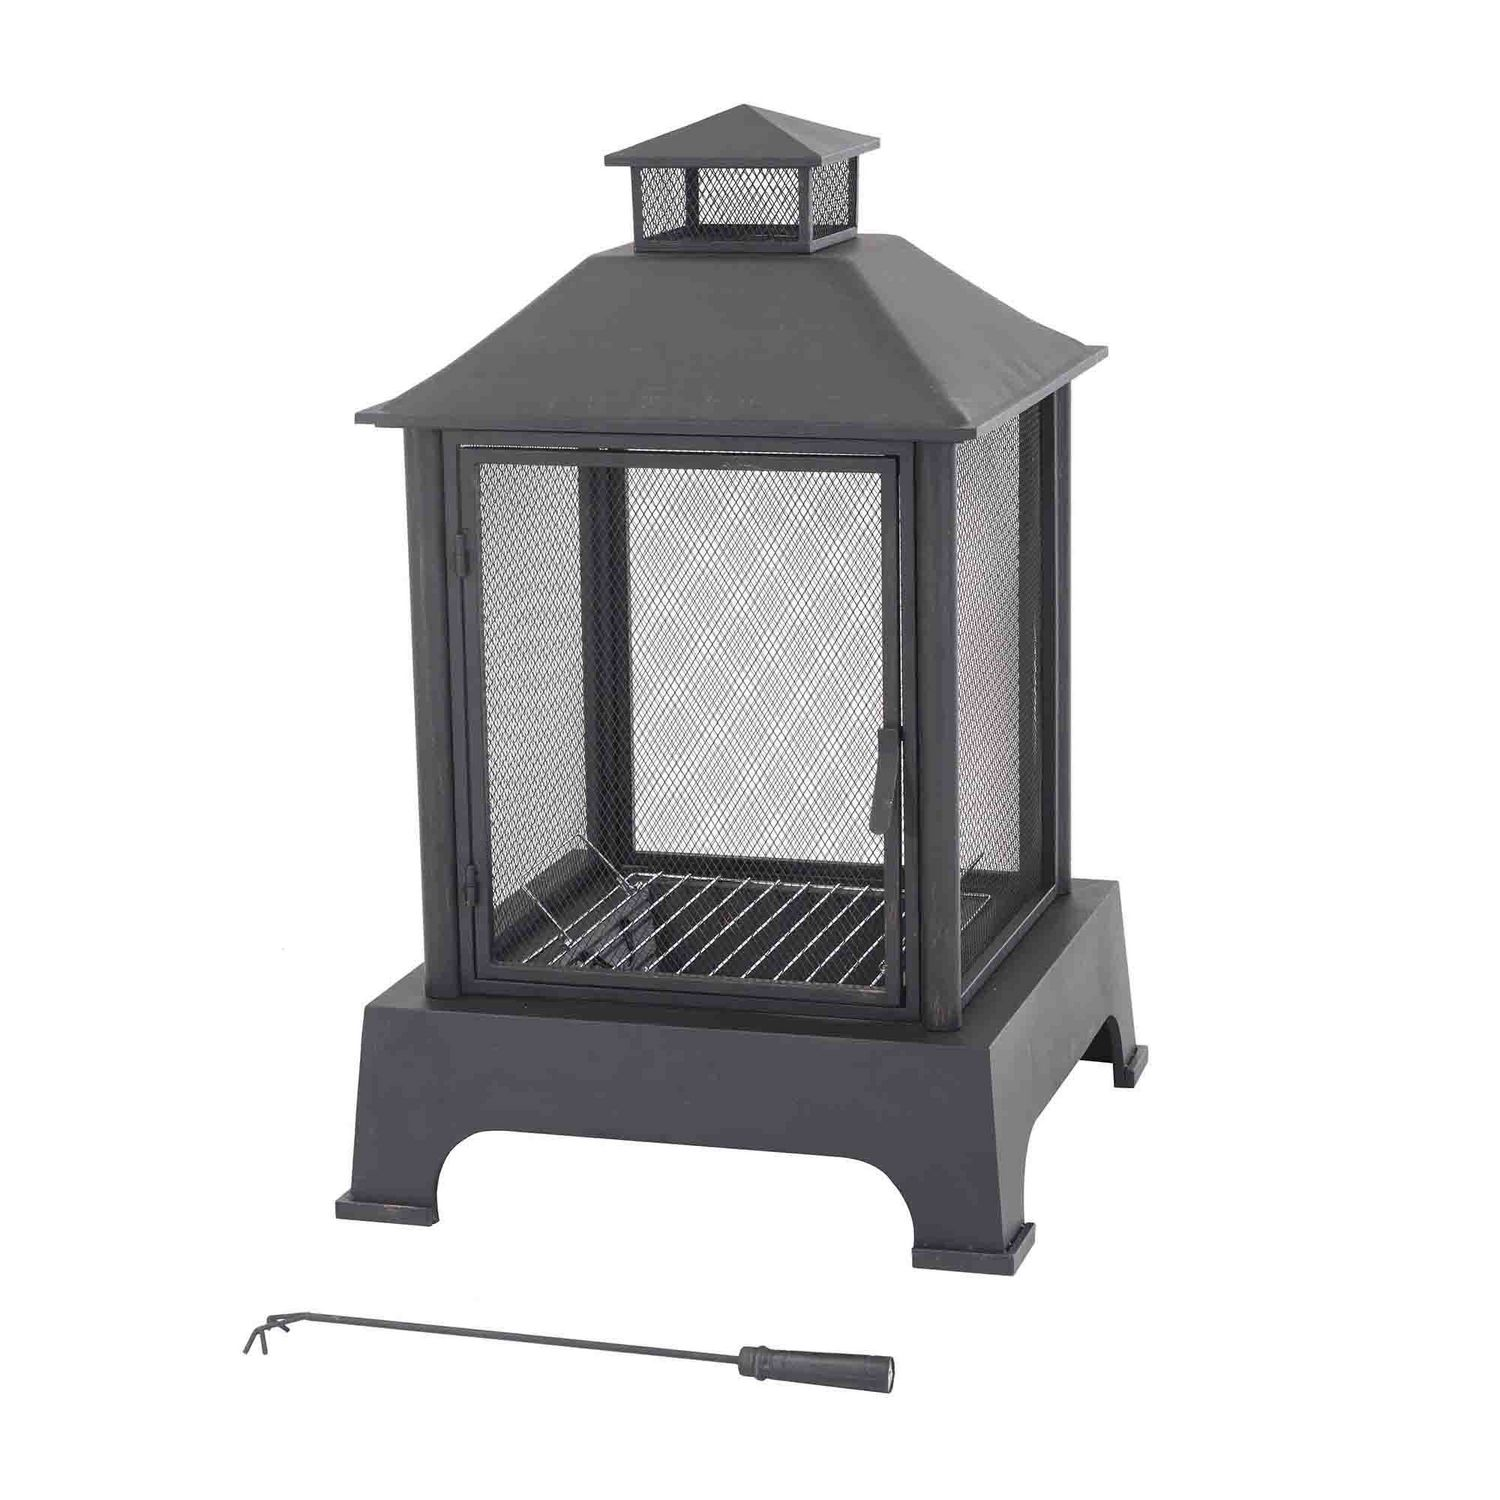 glass deluxe propane pyramid itm outdoor tube blk heater heaters hg flames patio dancing